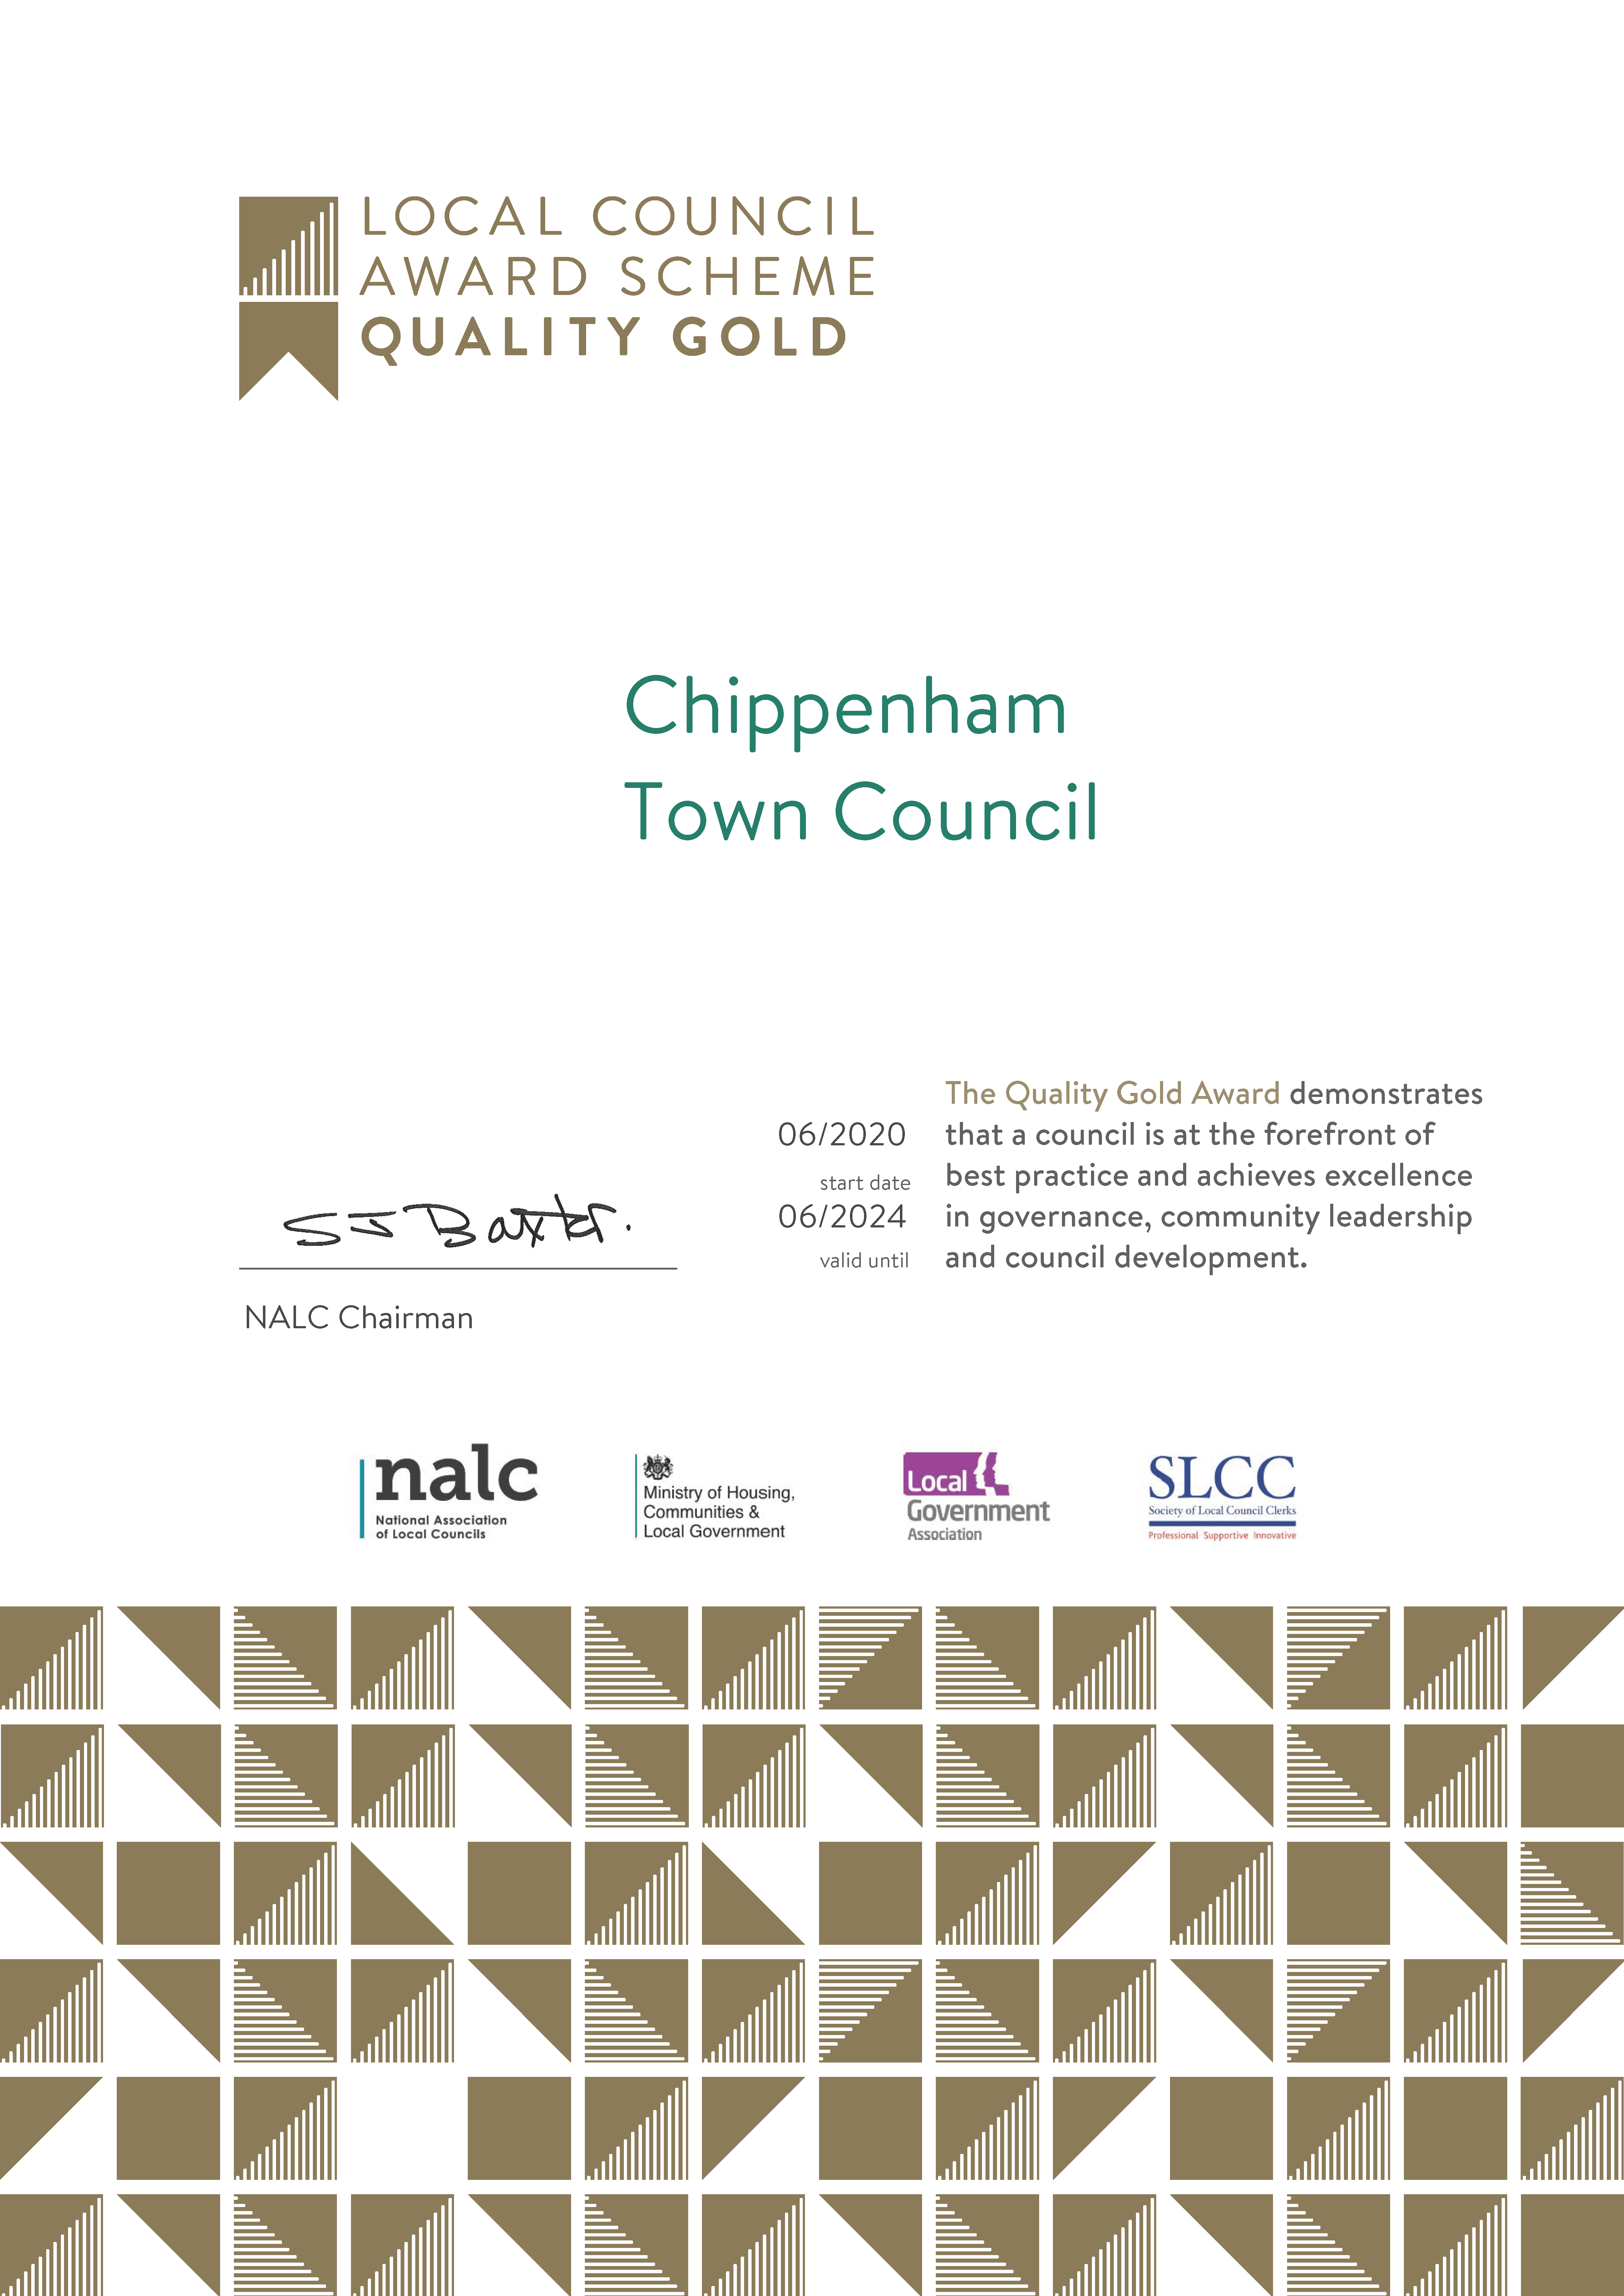 Quality Gold Award for Chippenham Town Council